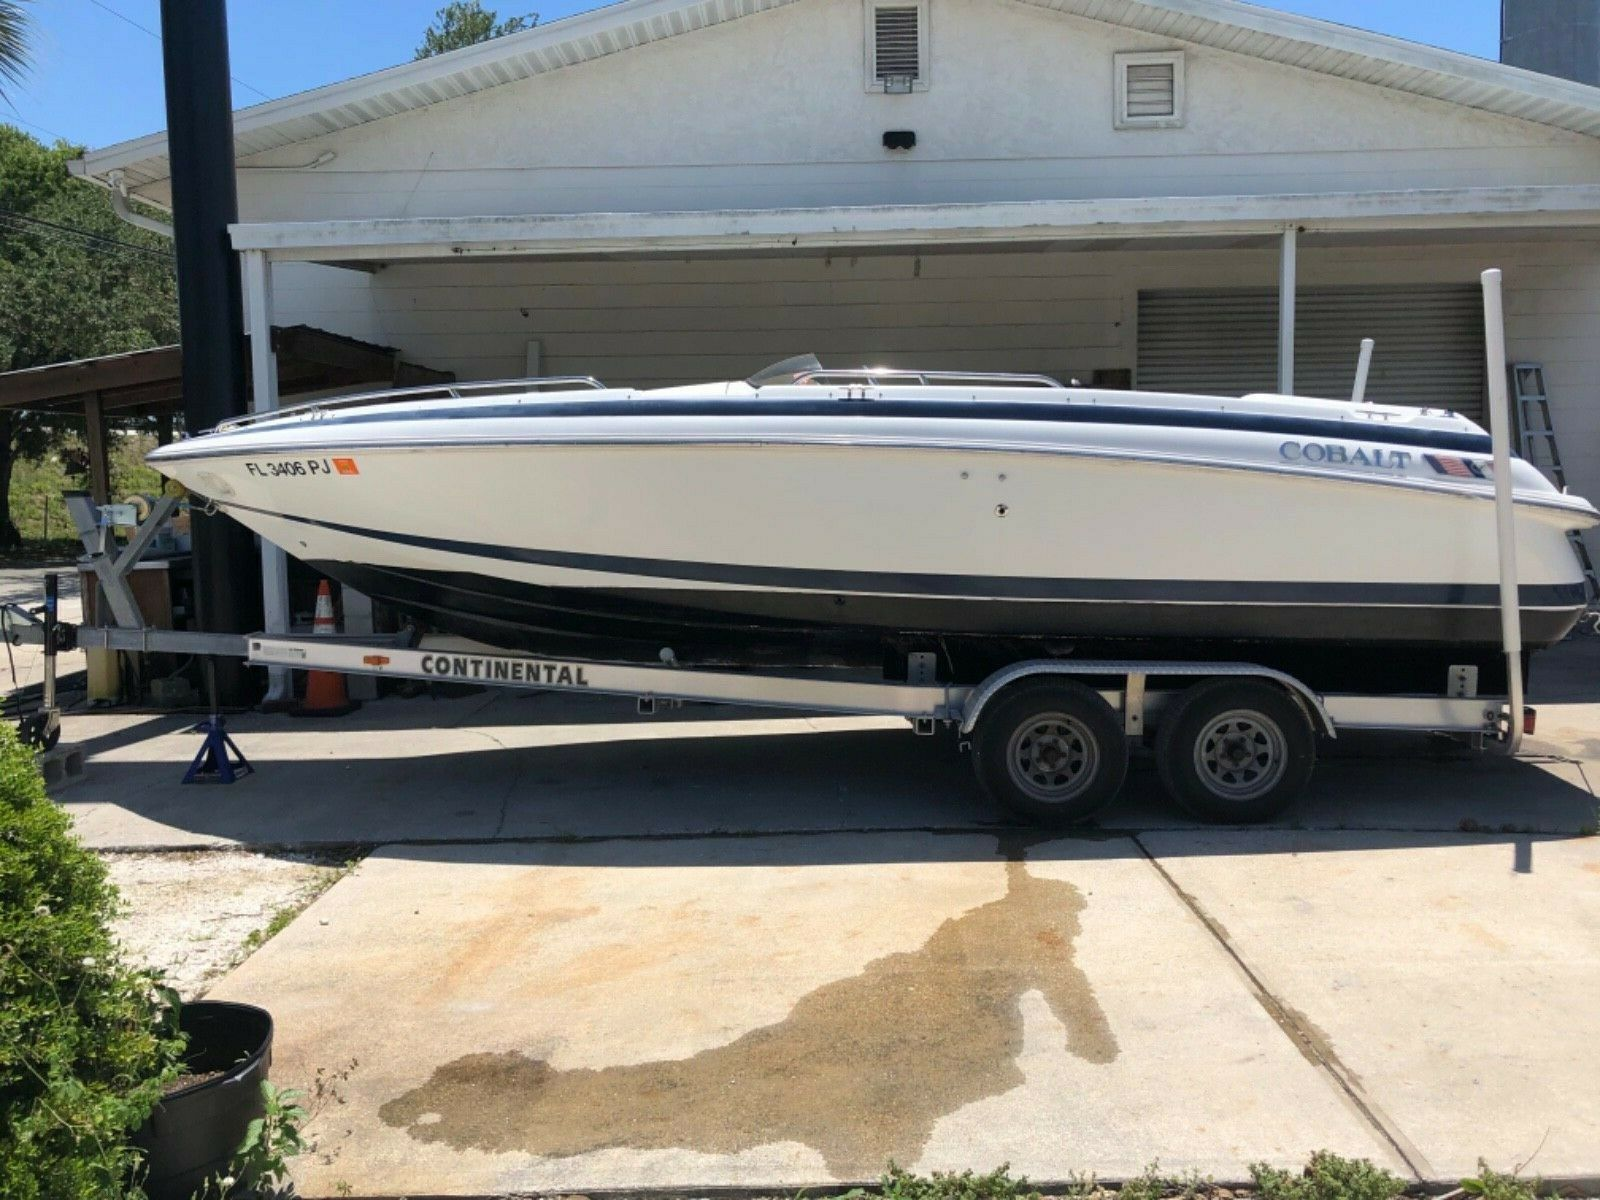 1997 23 Cobalt with Continental trailer NO MOTOR